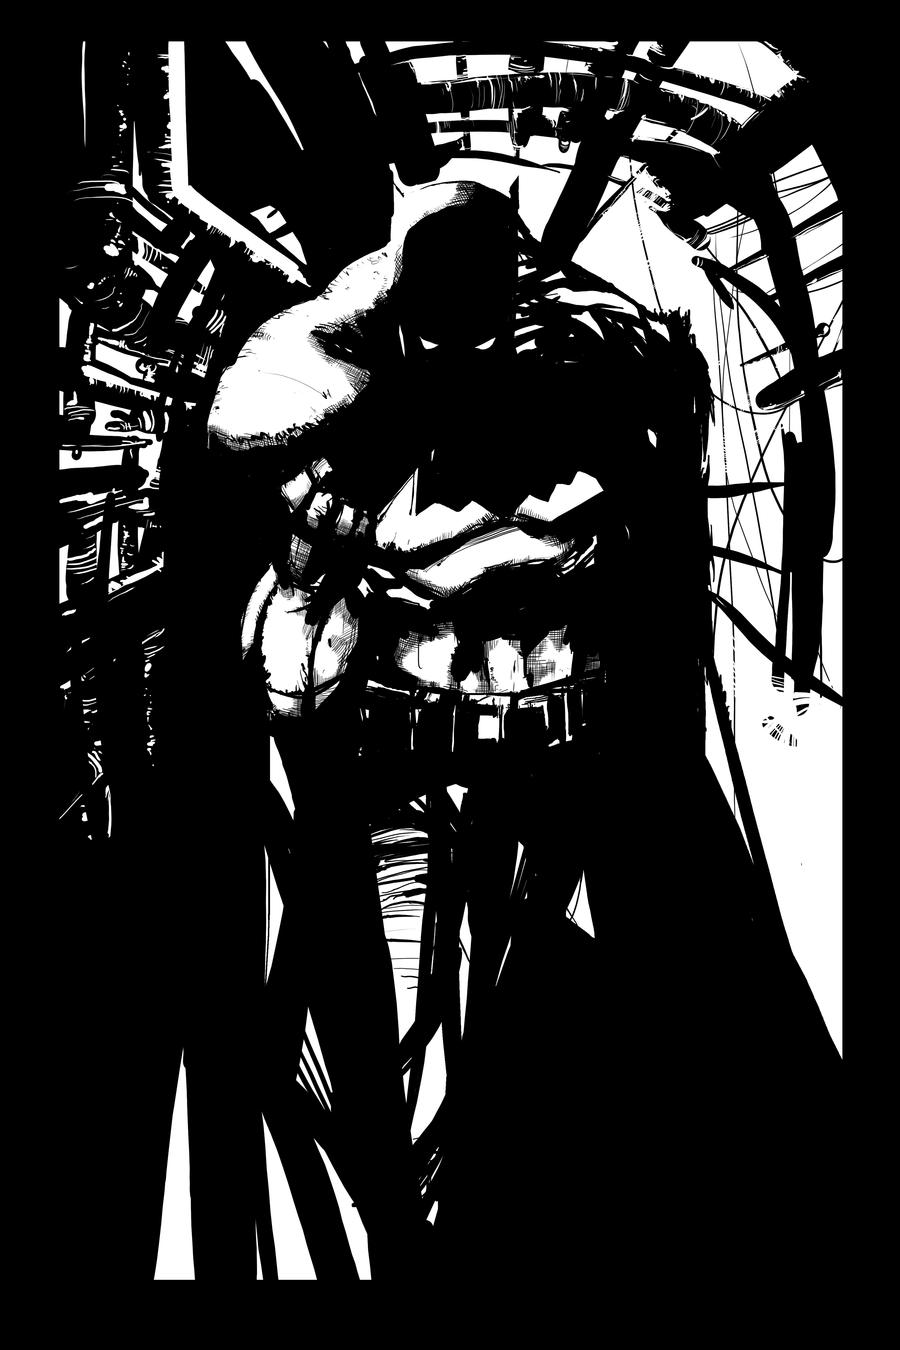 Batman Sketch BW variant by JohnyBlazzze